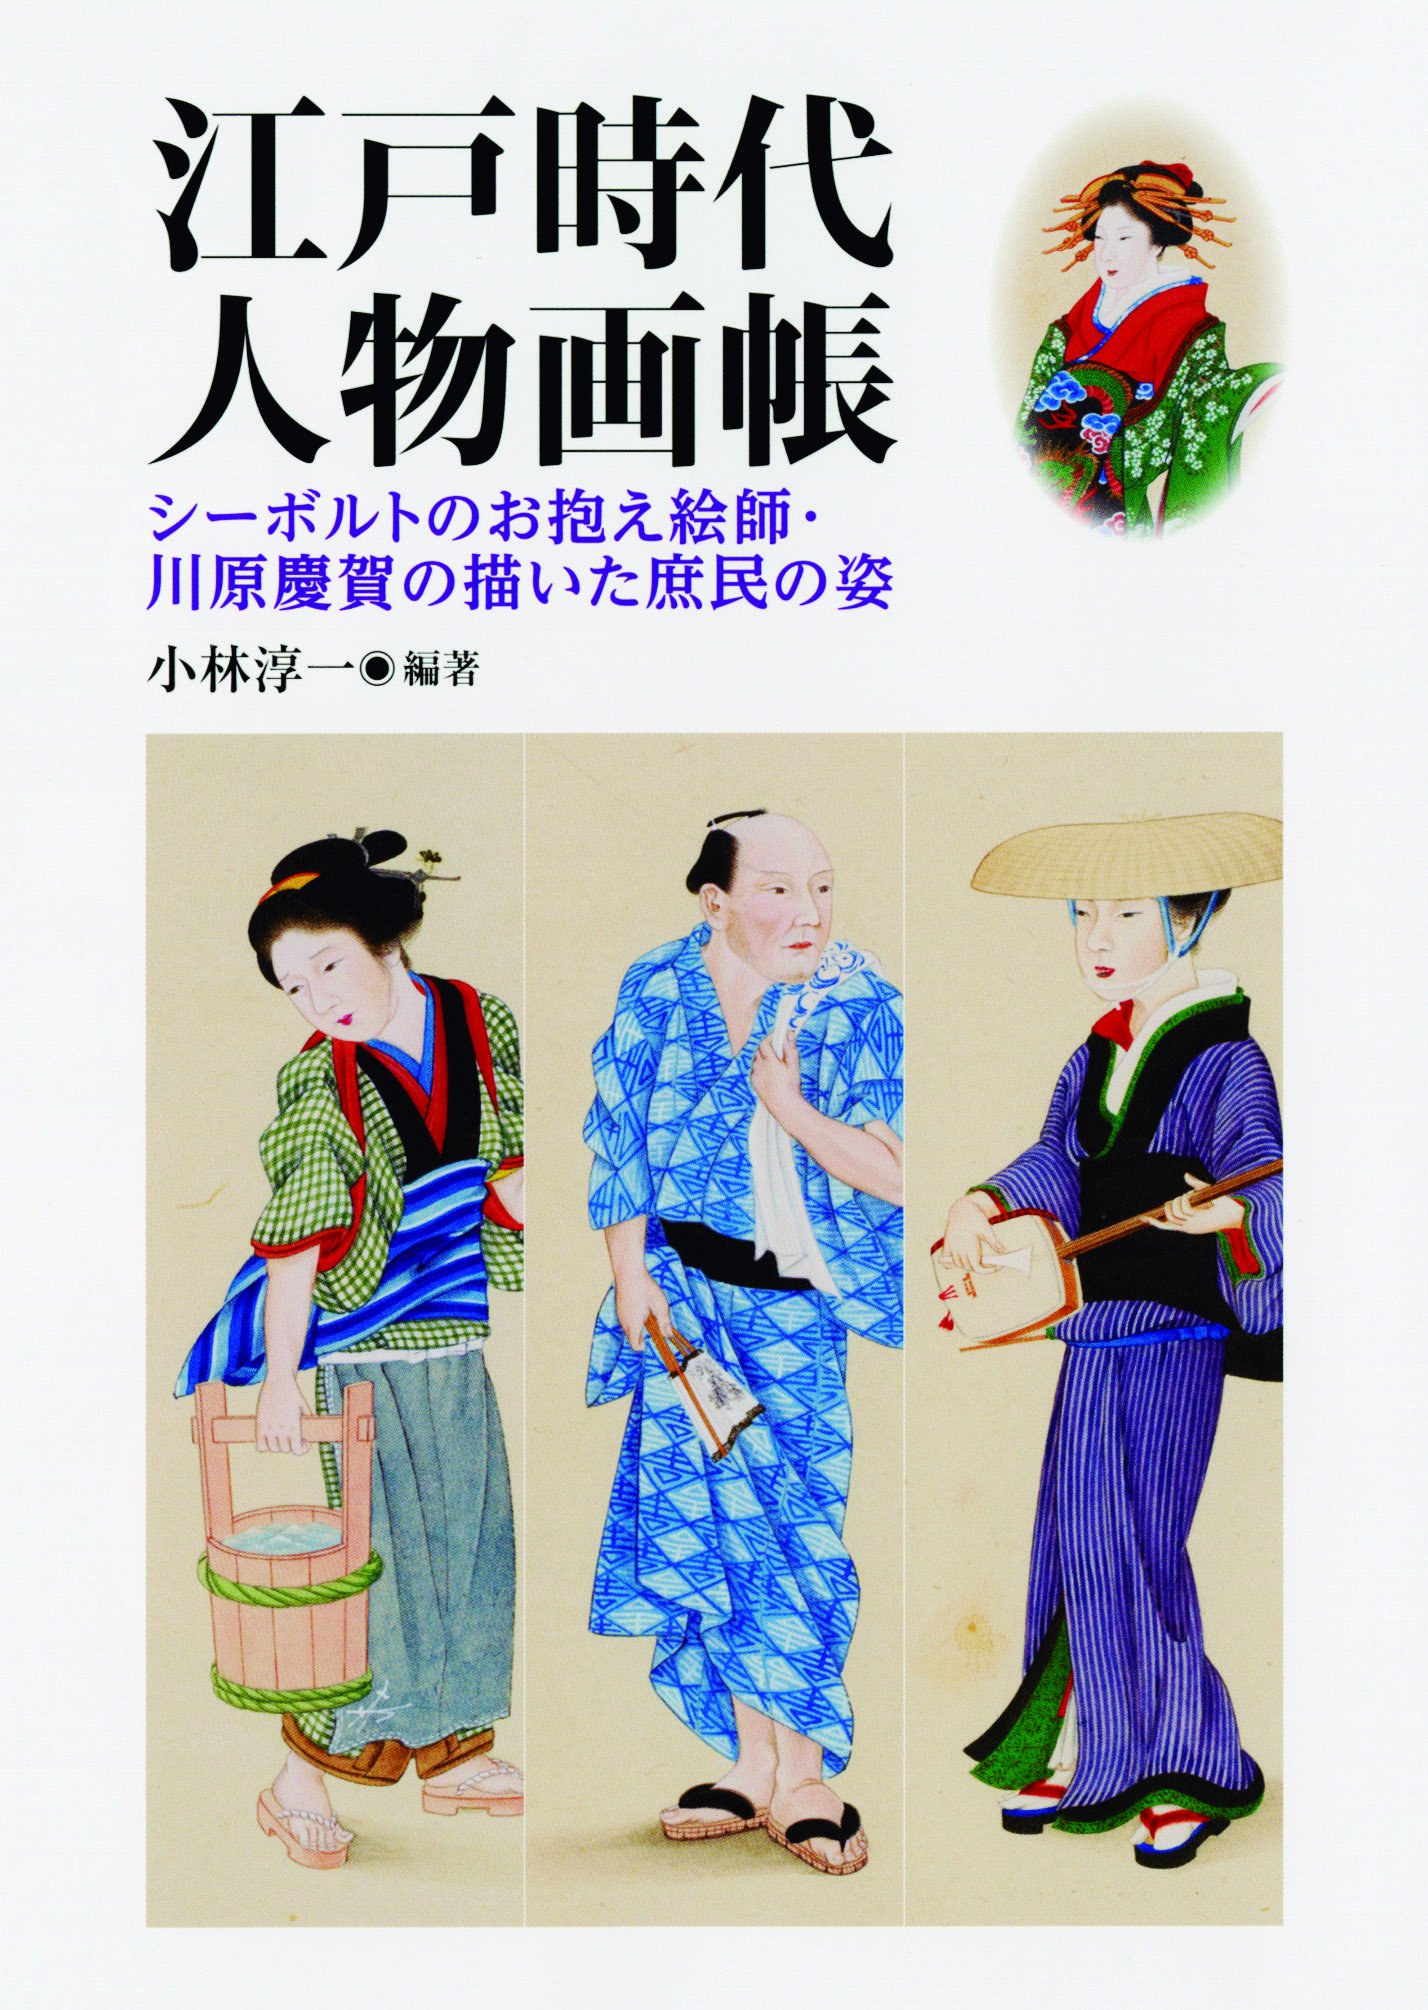 Read Online Appearance of commoners during the Edo period depicting the character pad Siebold's favorite artist and the nineteenth PDF